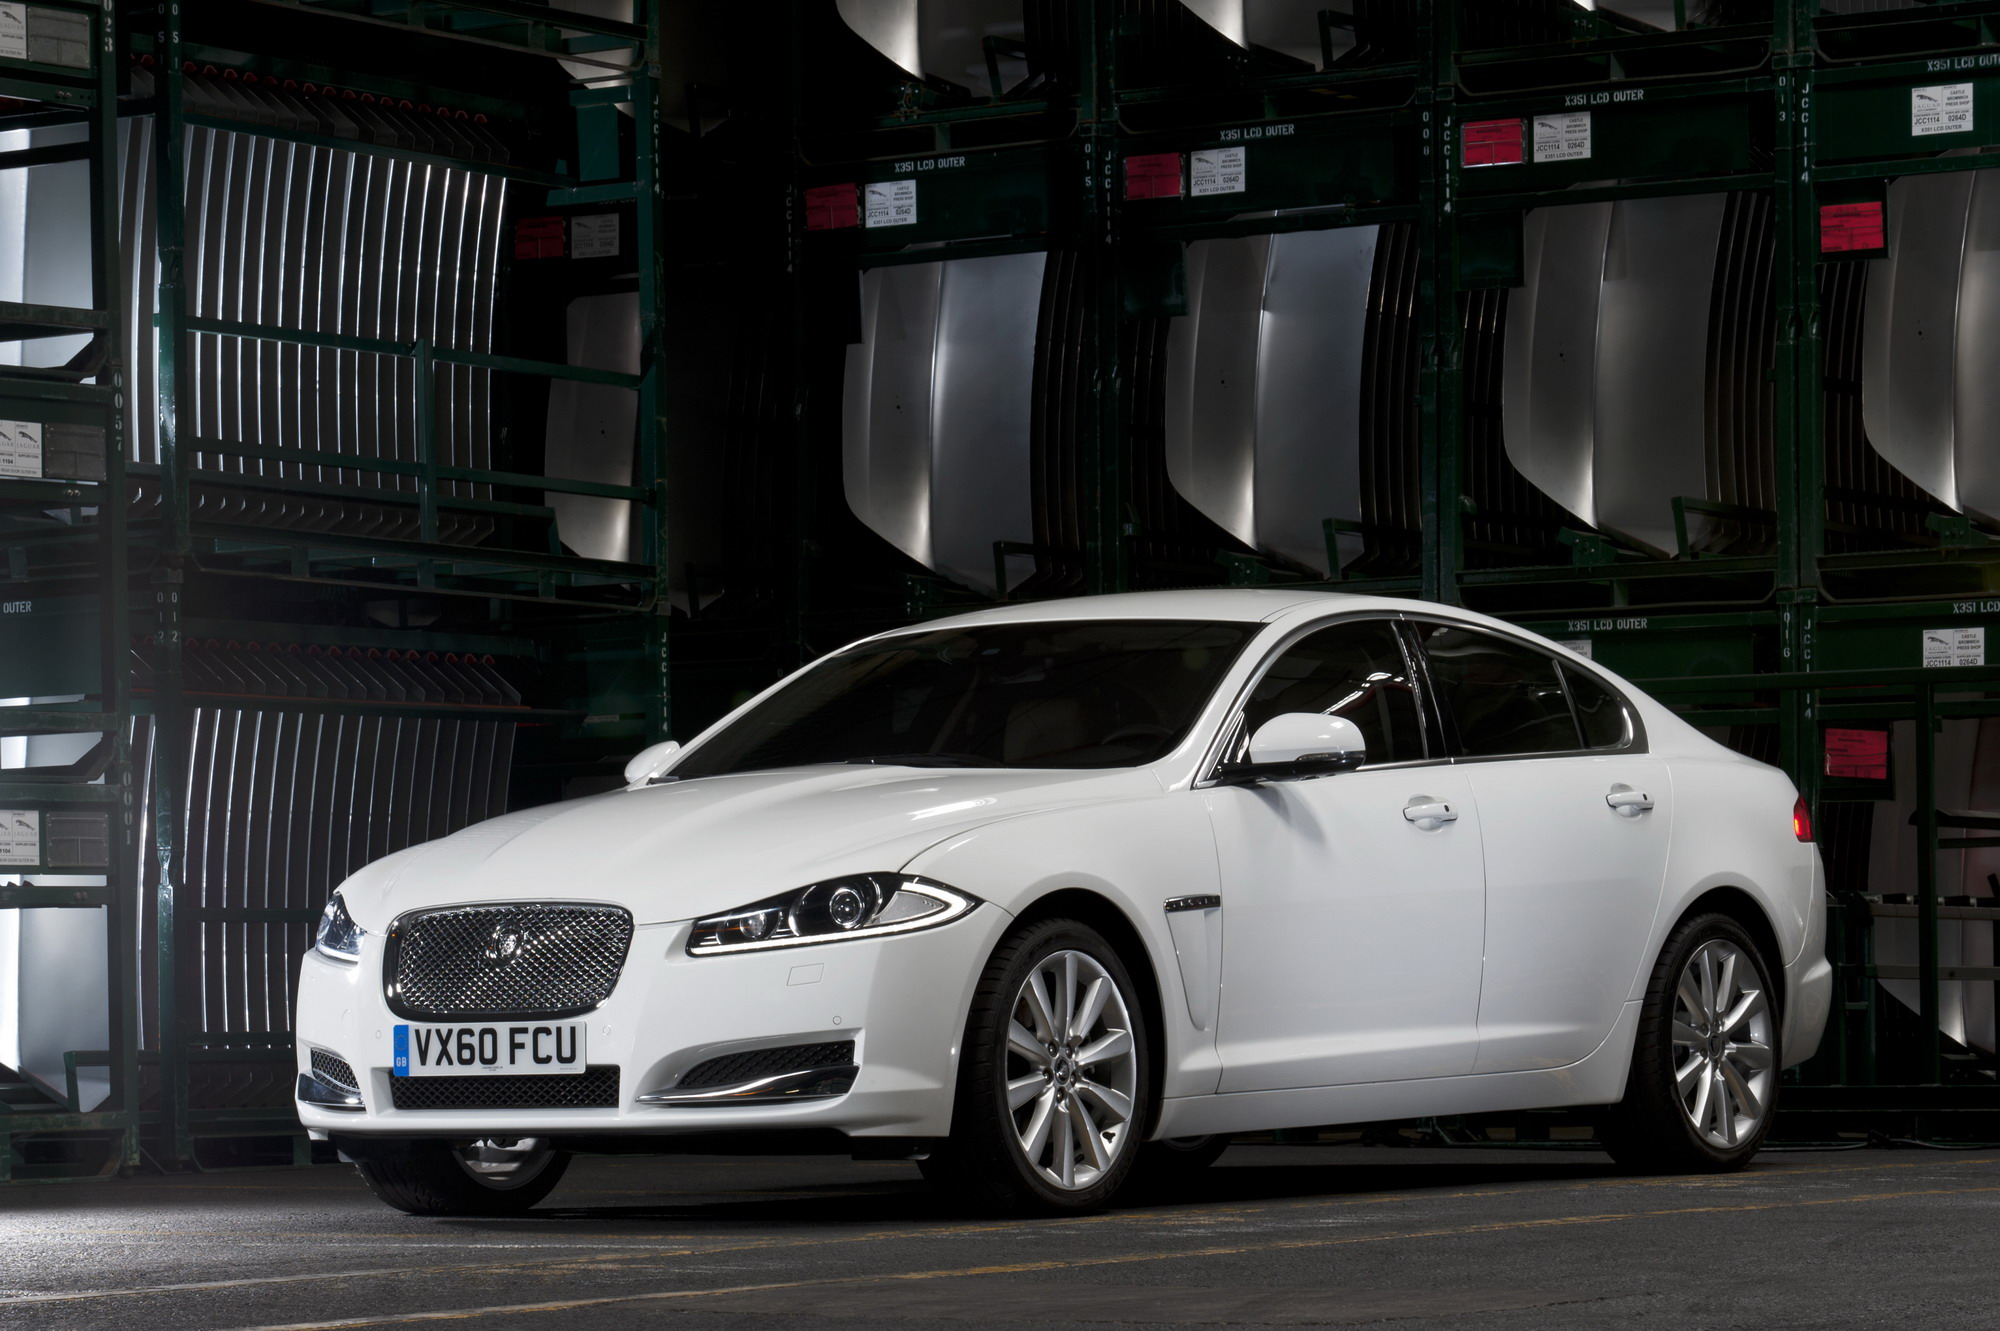 2012 2013 Jaguar Xf Top Speed